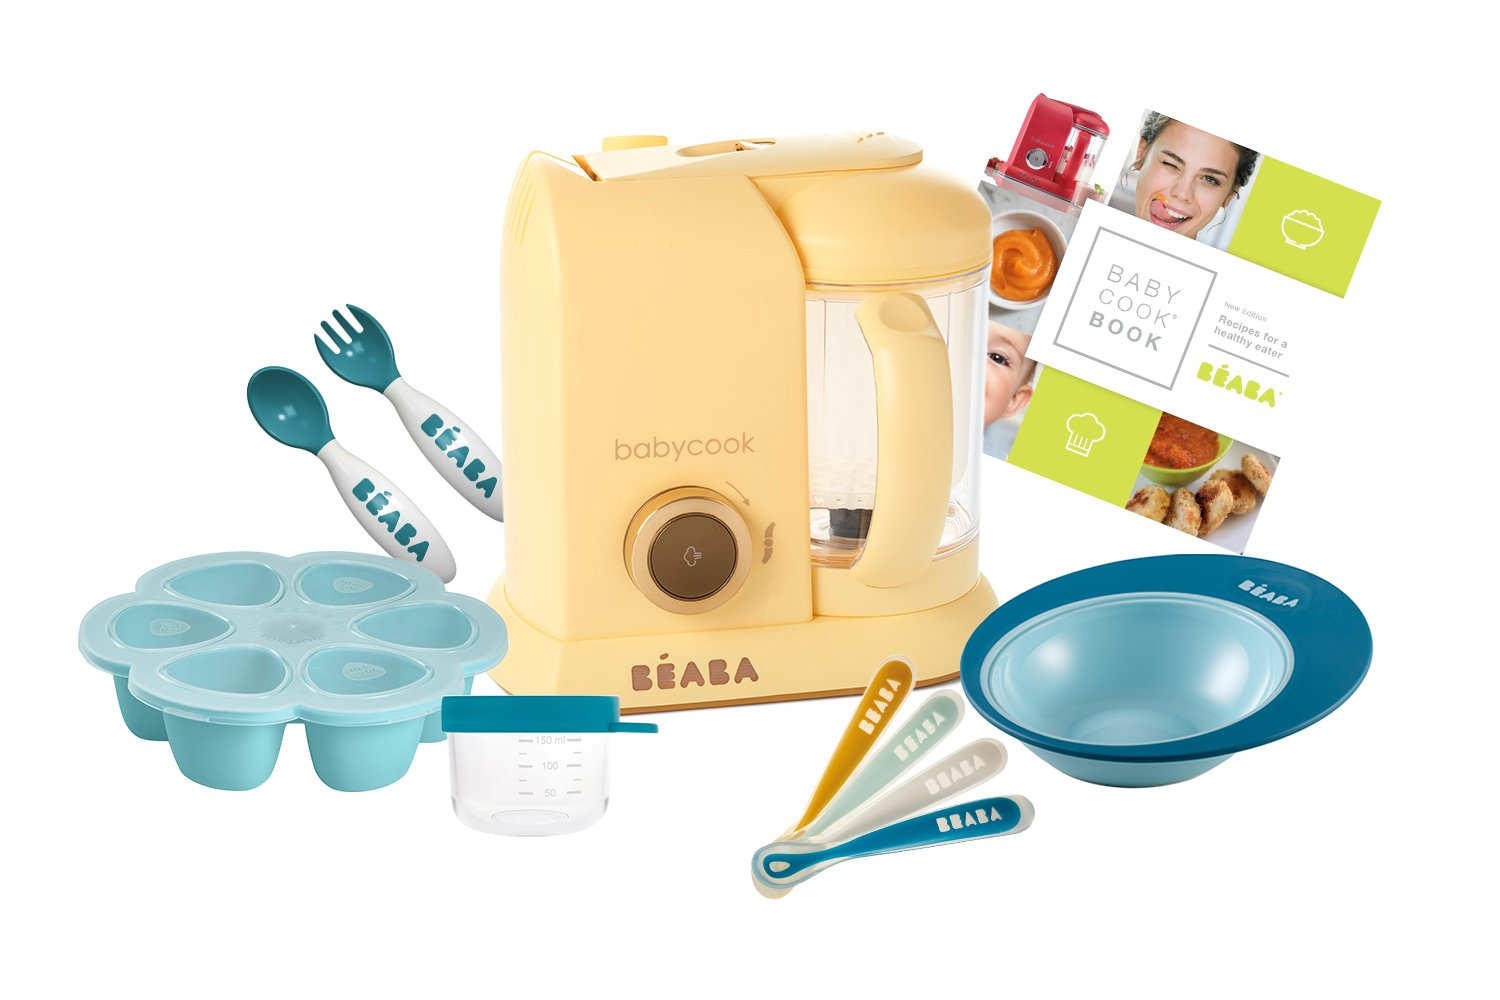 BEABA 2nd Stage Feeding Gift Set, includes Babycook, silicone spoons, 2nd stage cutlery, silicone food storage tray, bowls, glass containers, cookbook, Lemon